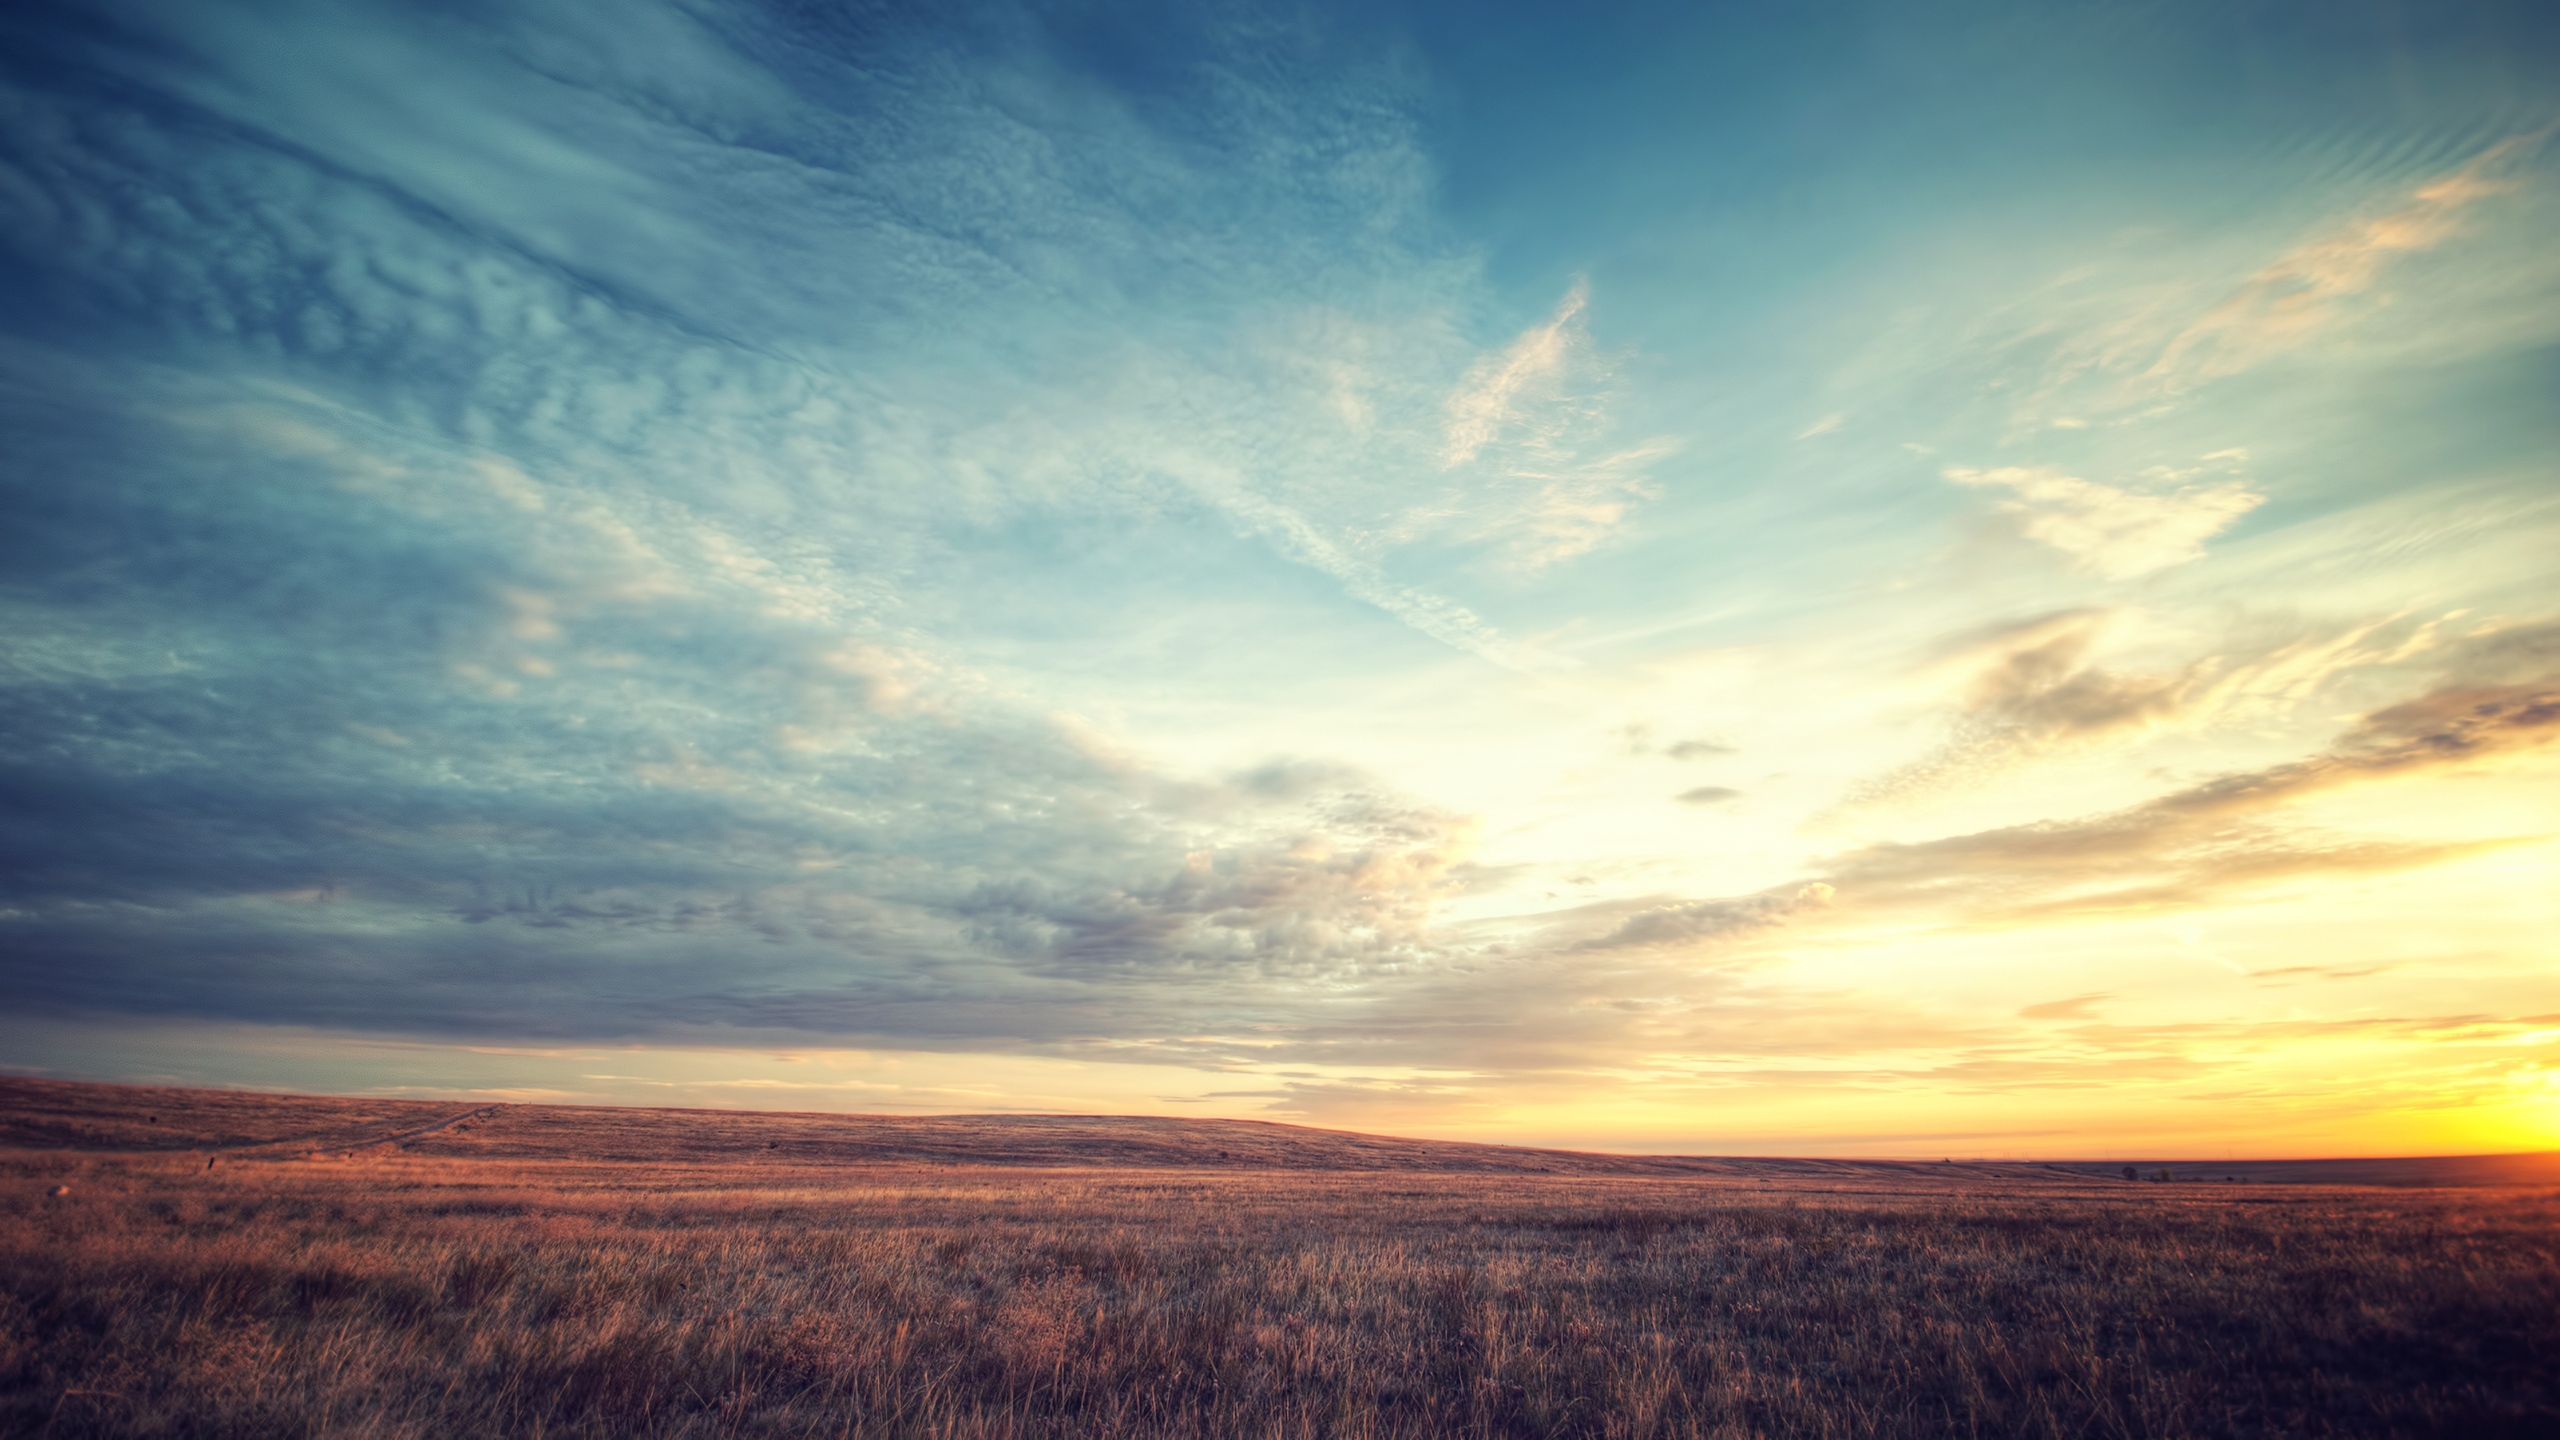 2560x1440 Field Grass Sunset Clouds Sky YouTube Channel Cover